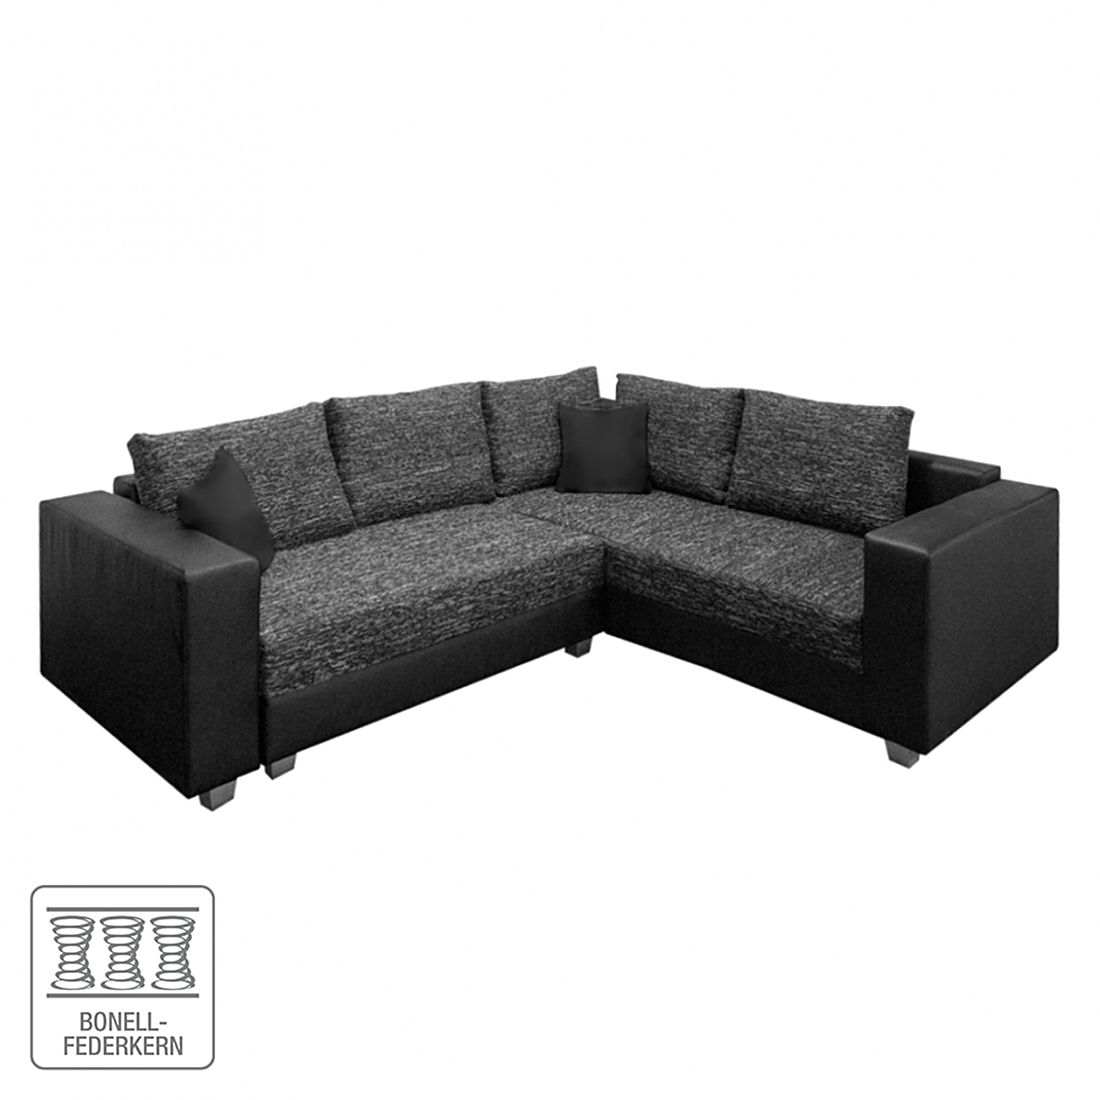 ecksofa mit schlaffunktion ausverkauf inspirierendes design f r wohnm bel. Black Bedroom Furniture Sets. Home Design Ideas